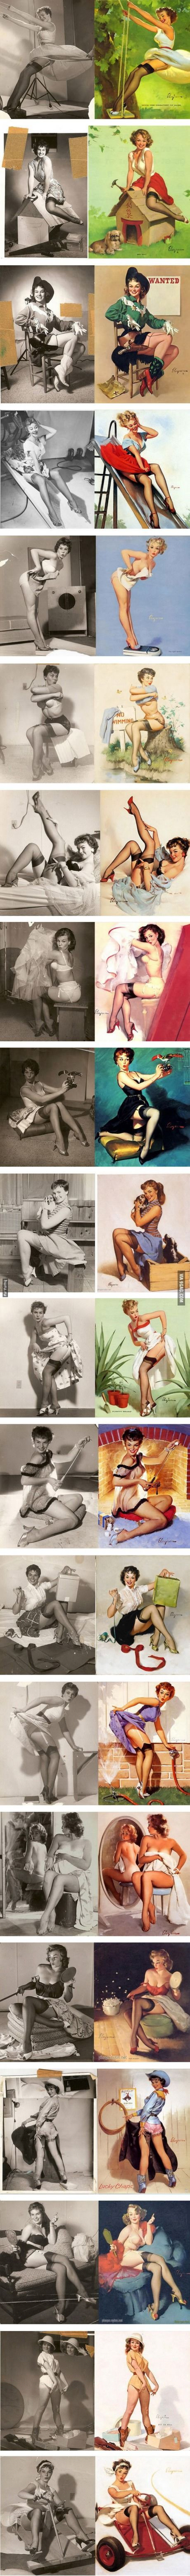 Before Photoshop, there was pinup art. #beautiful